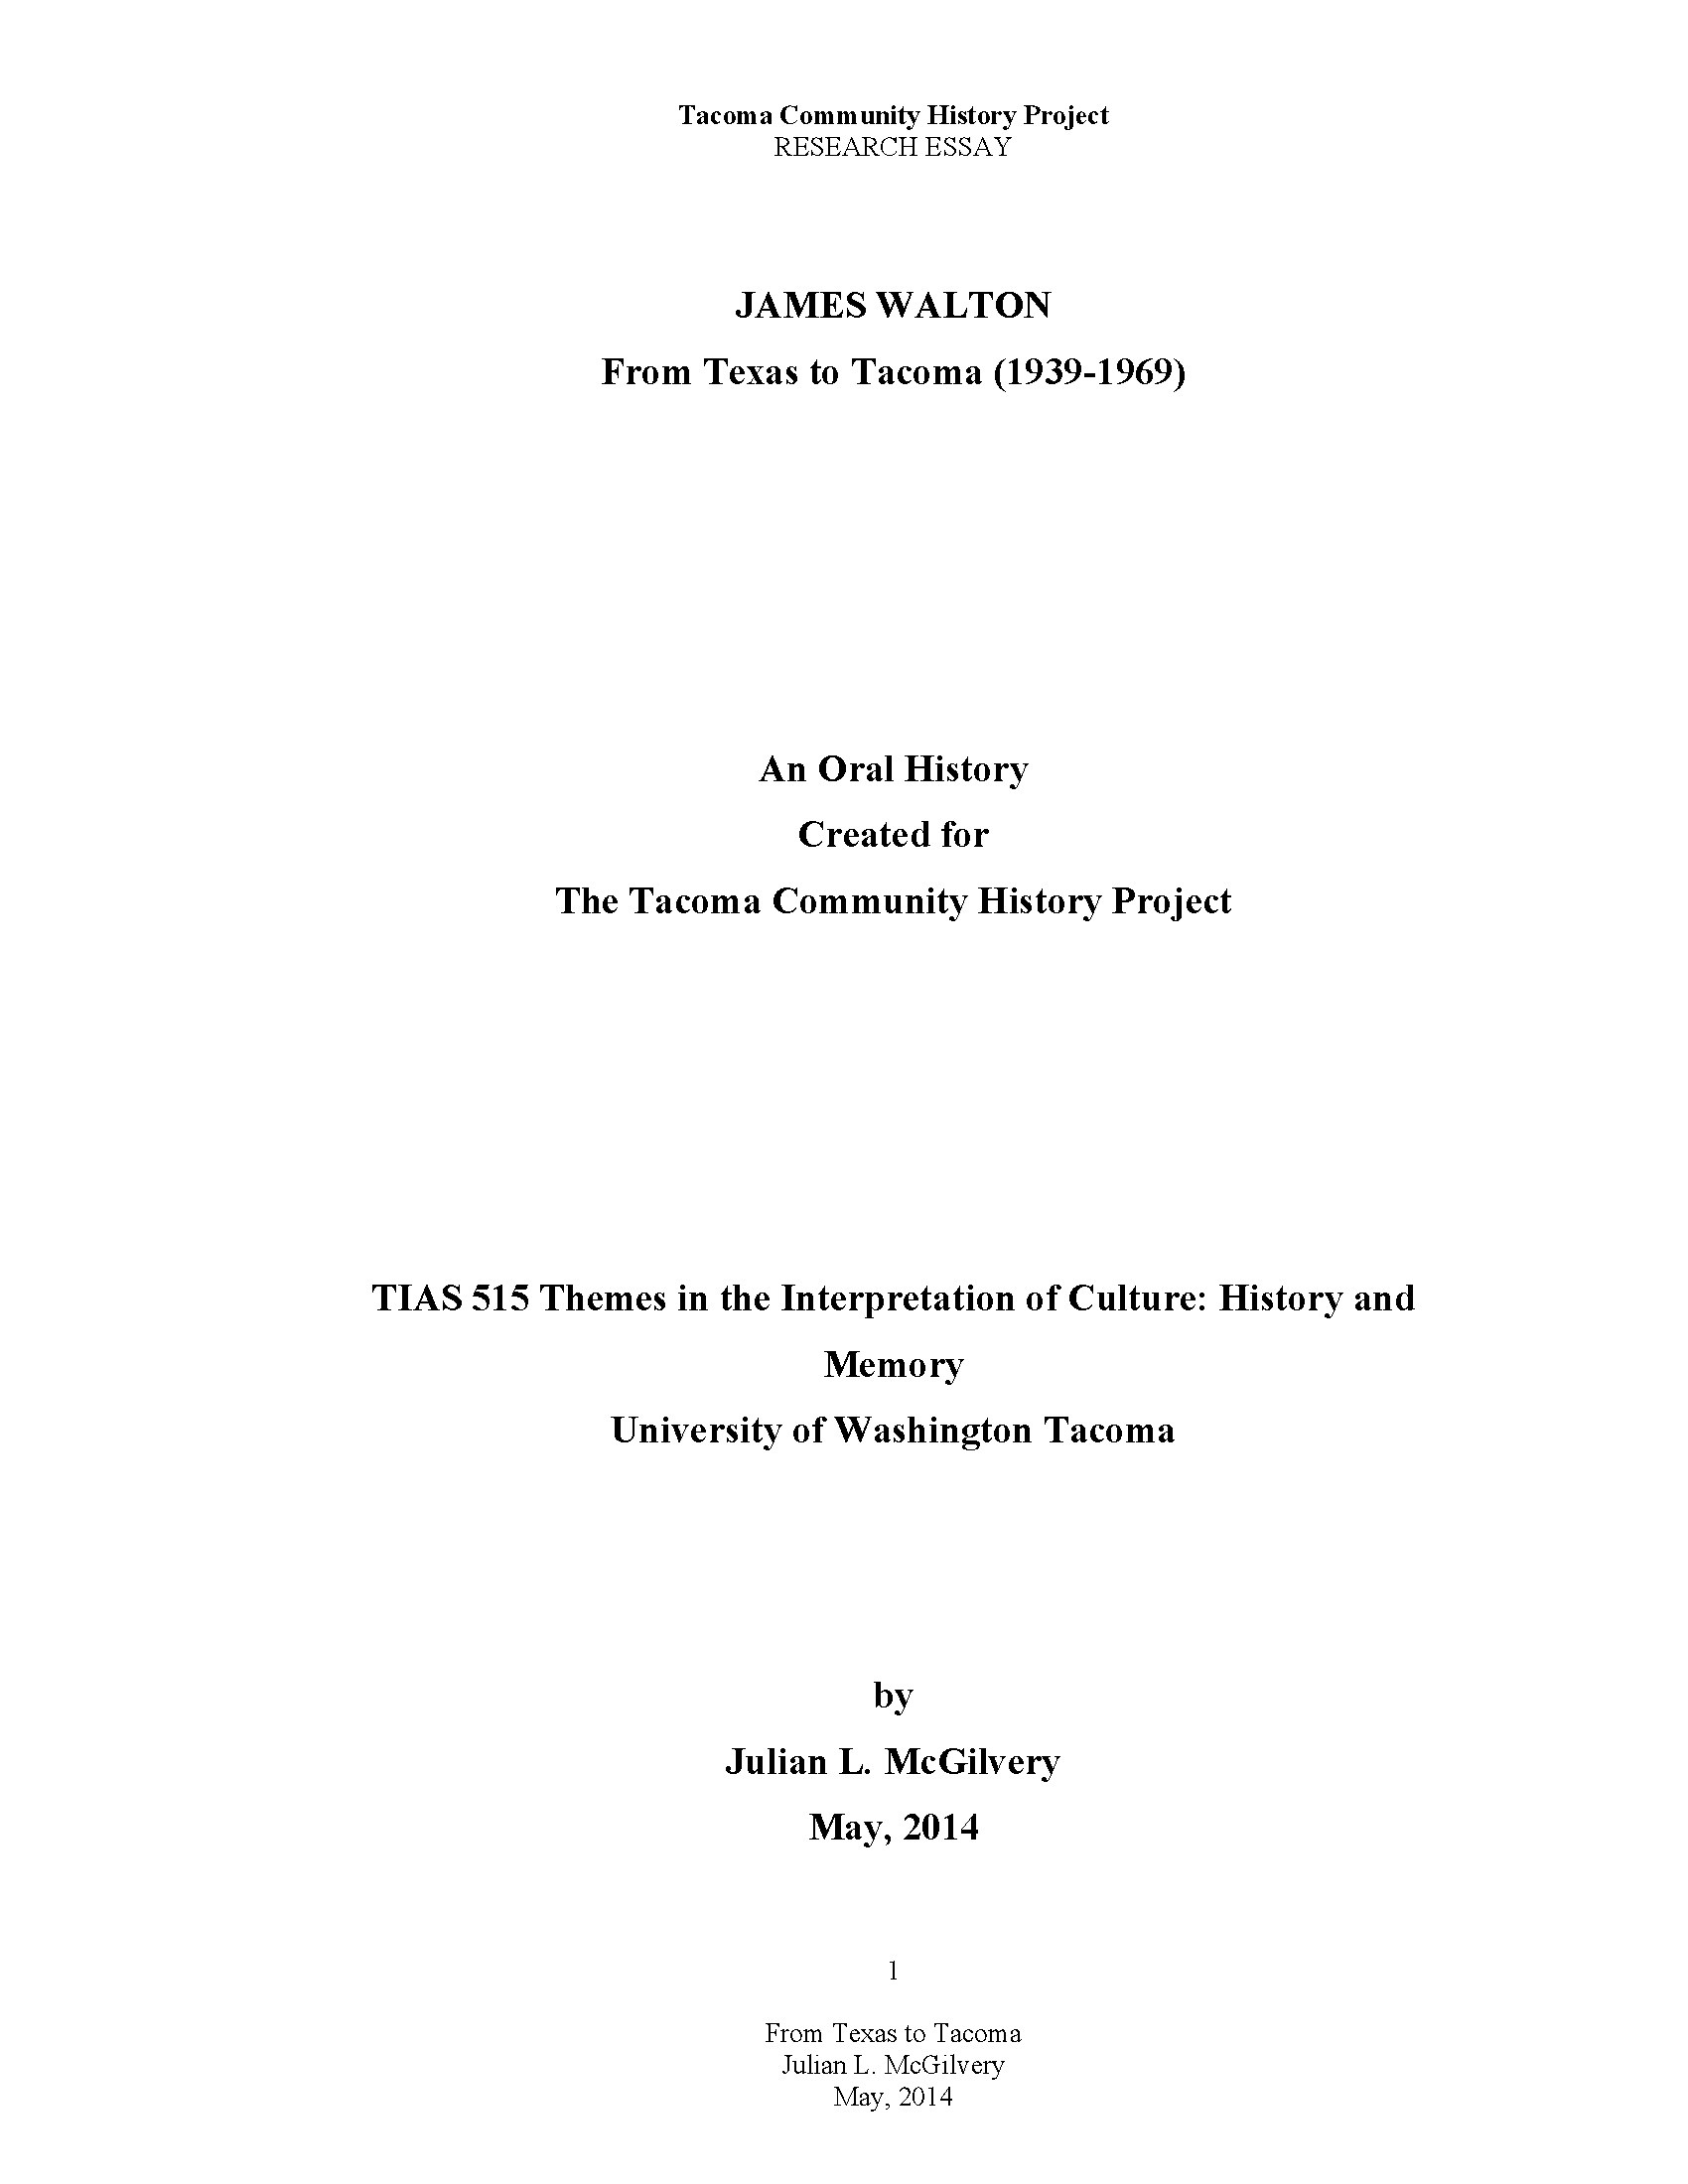 A Modest Proposal Essay Julian Mcgilvery Research Essay Science And Literature Essay also Compare Contrast Essay Examples High School Julian Mcgilvery Research Essay  Tacoma Community History Project  Good Thesis Statements For Essays